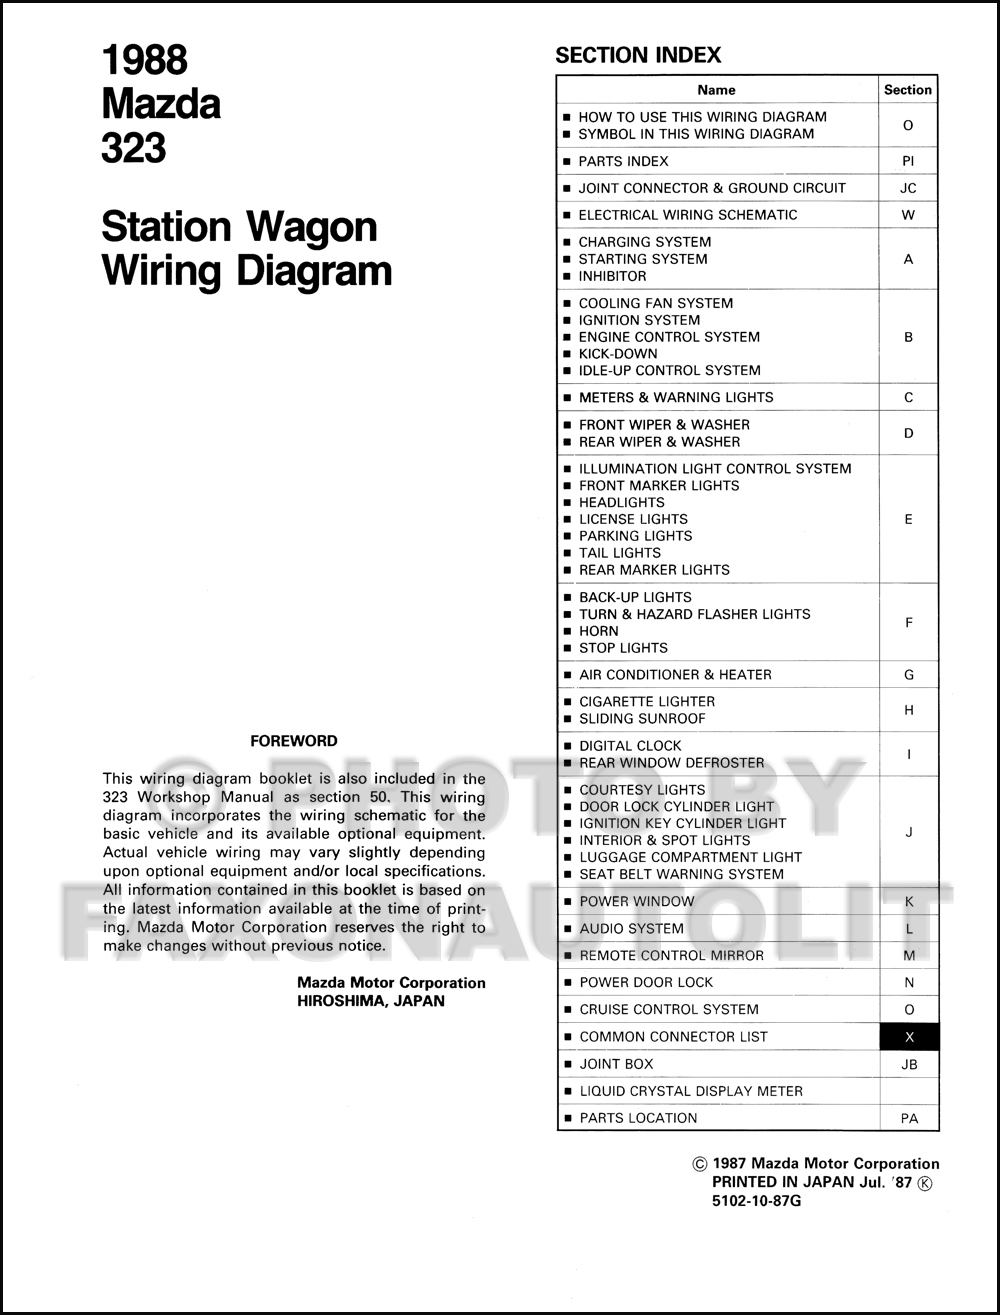 1988 mazda 323 station wagon wiring diagram manual original mazda astina radio wiring diagram 1989 mazda 323 stereo wiring diagram